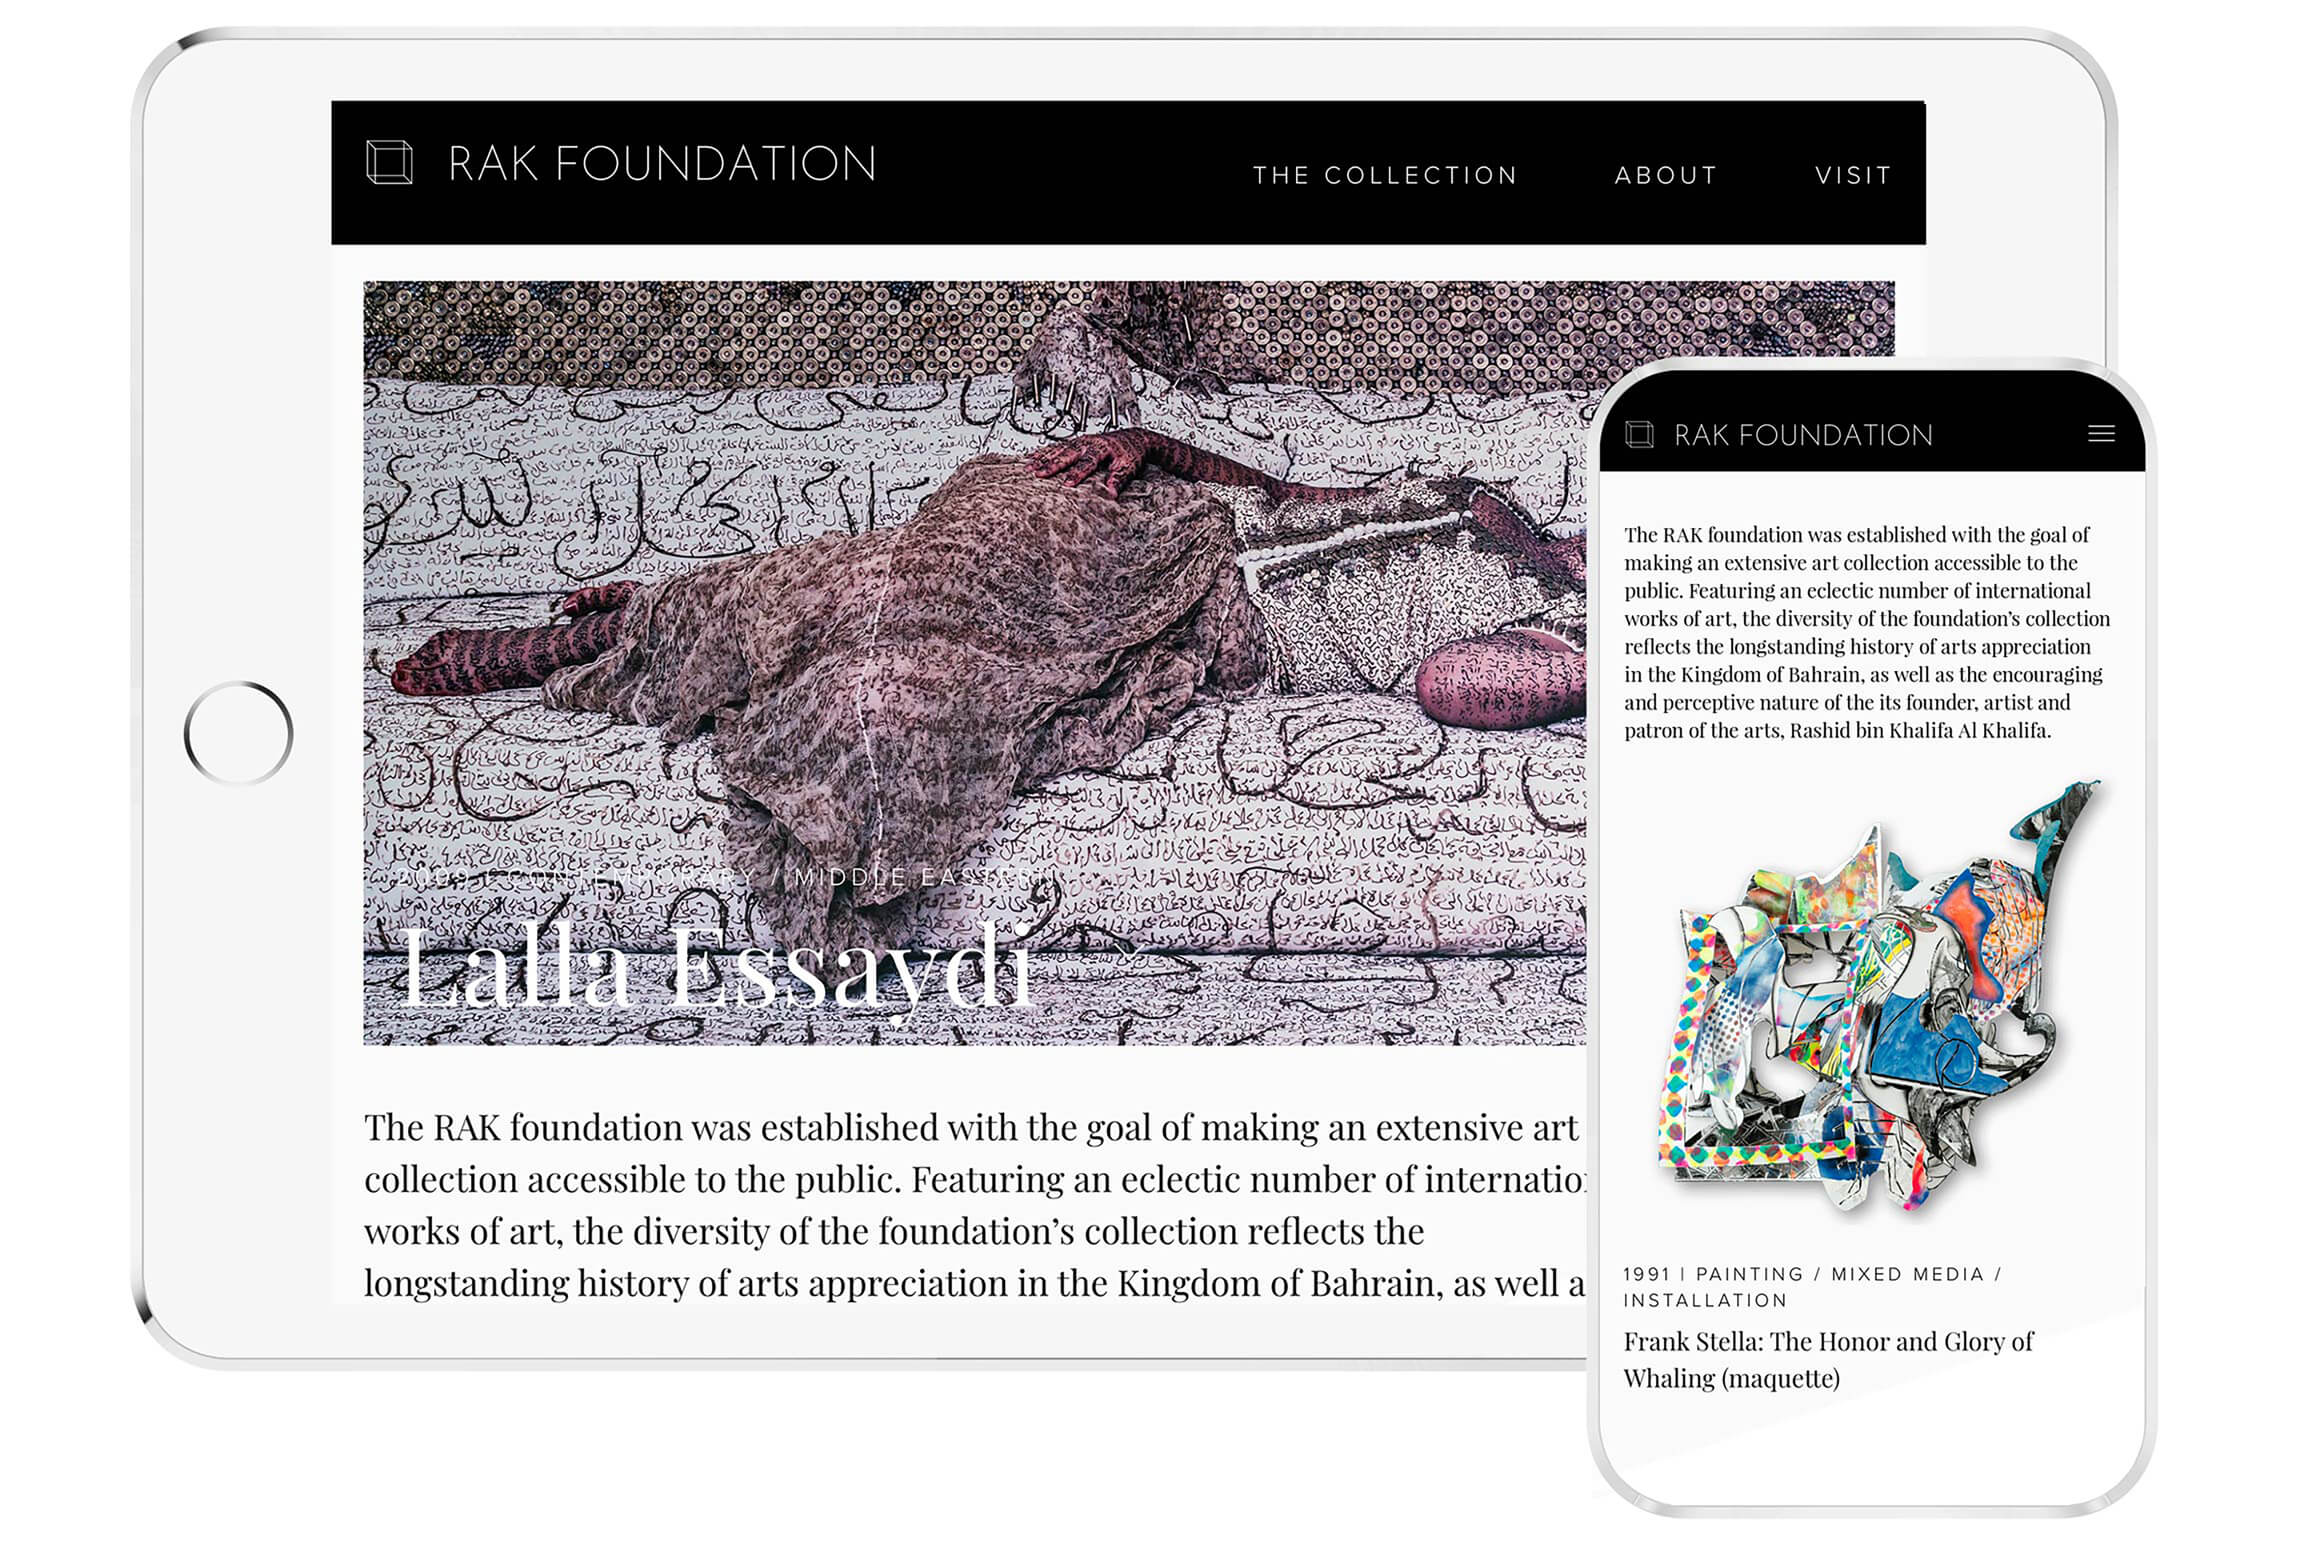 web design art collection tablet and phone